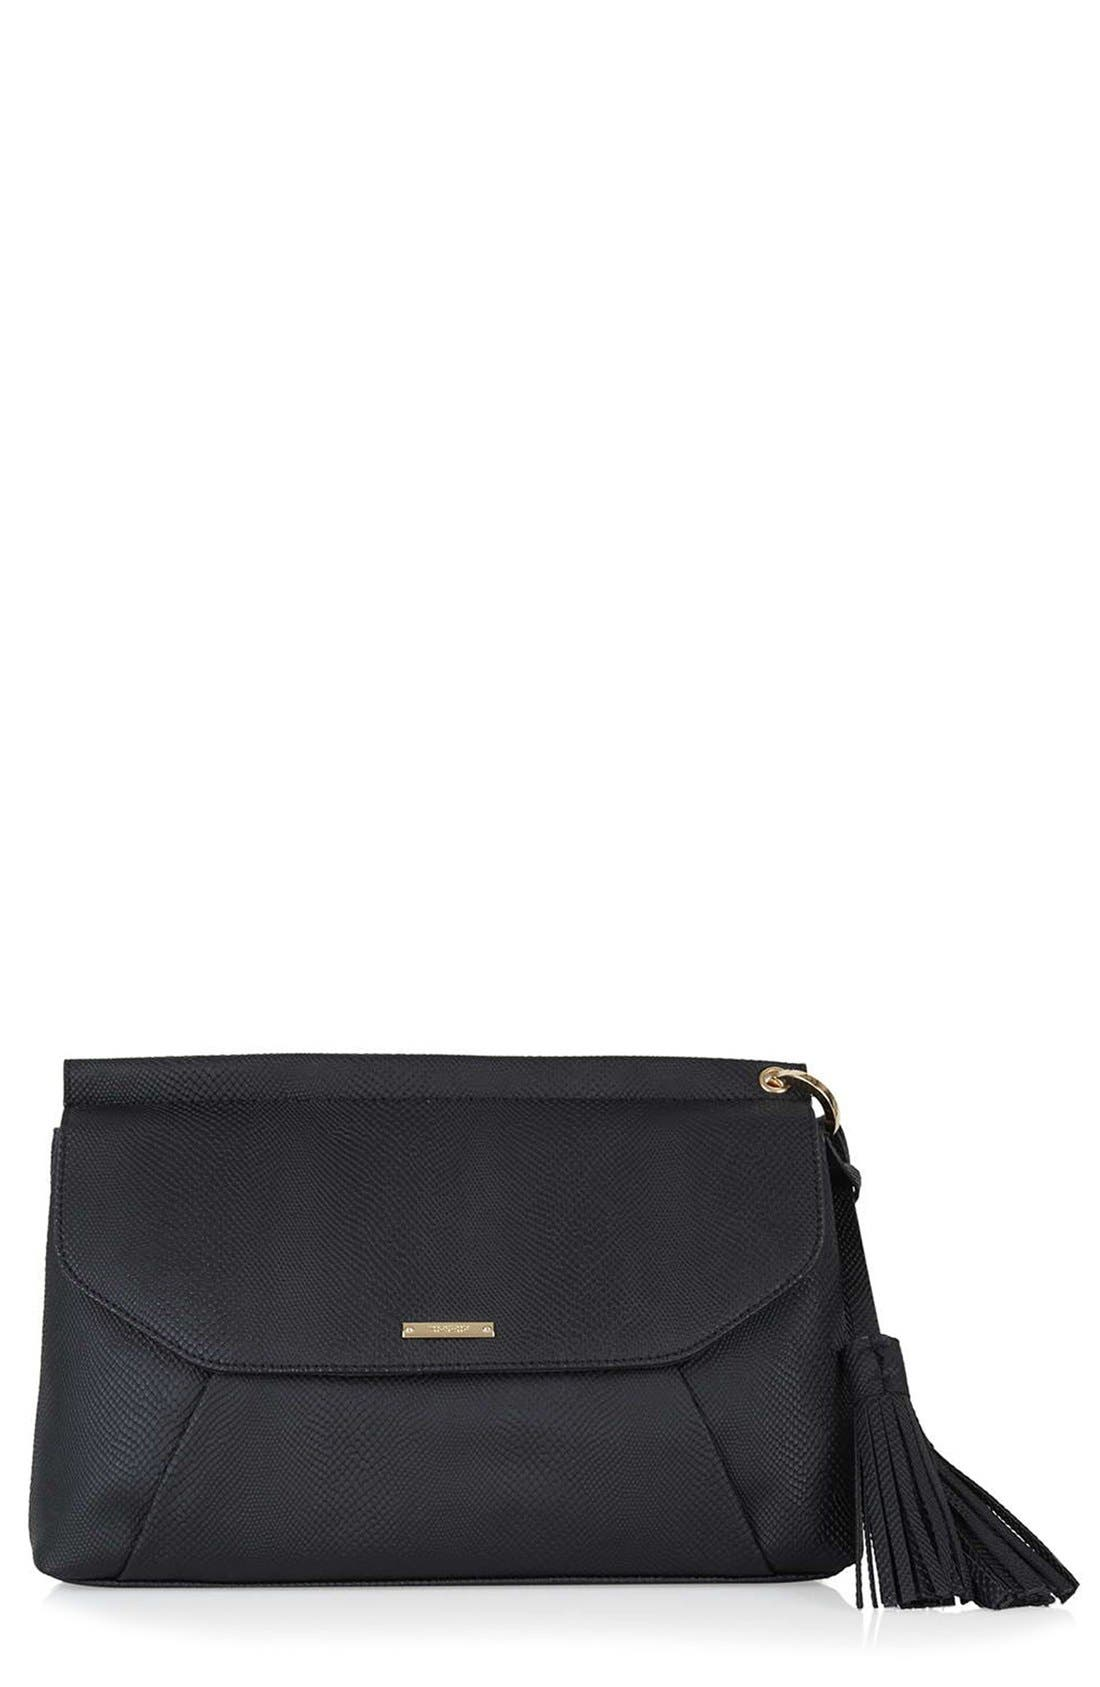 Alternate Image 1 Selected - Topshop Faux Leather Envelope Clutch